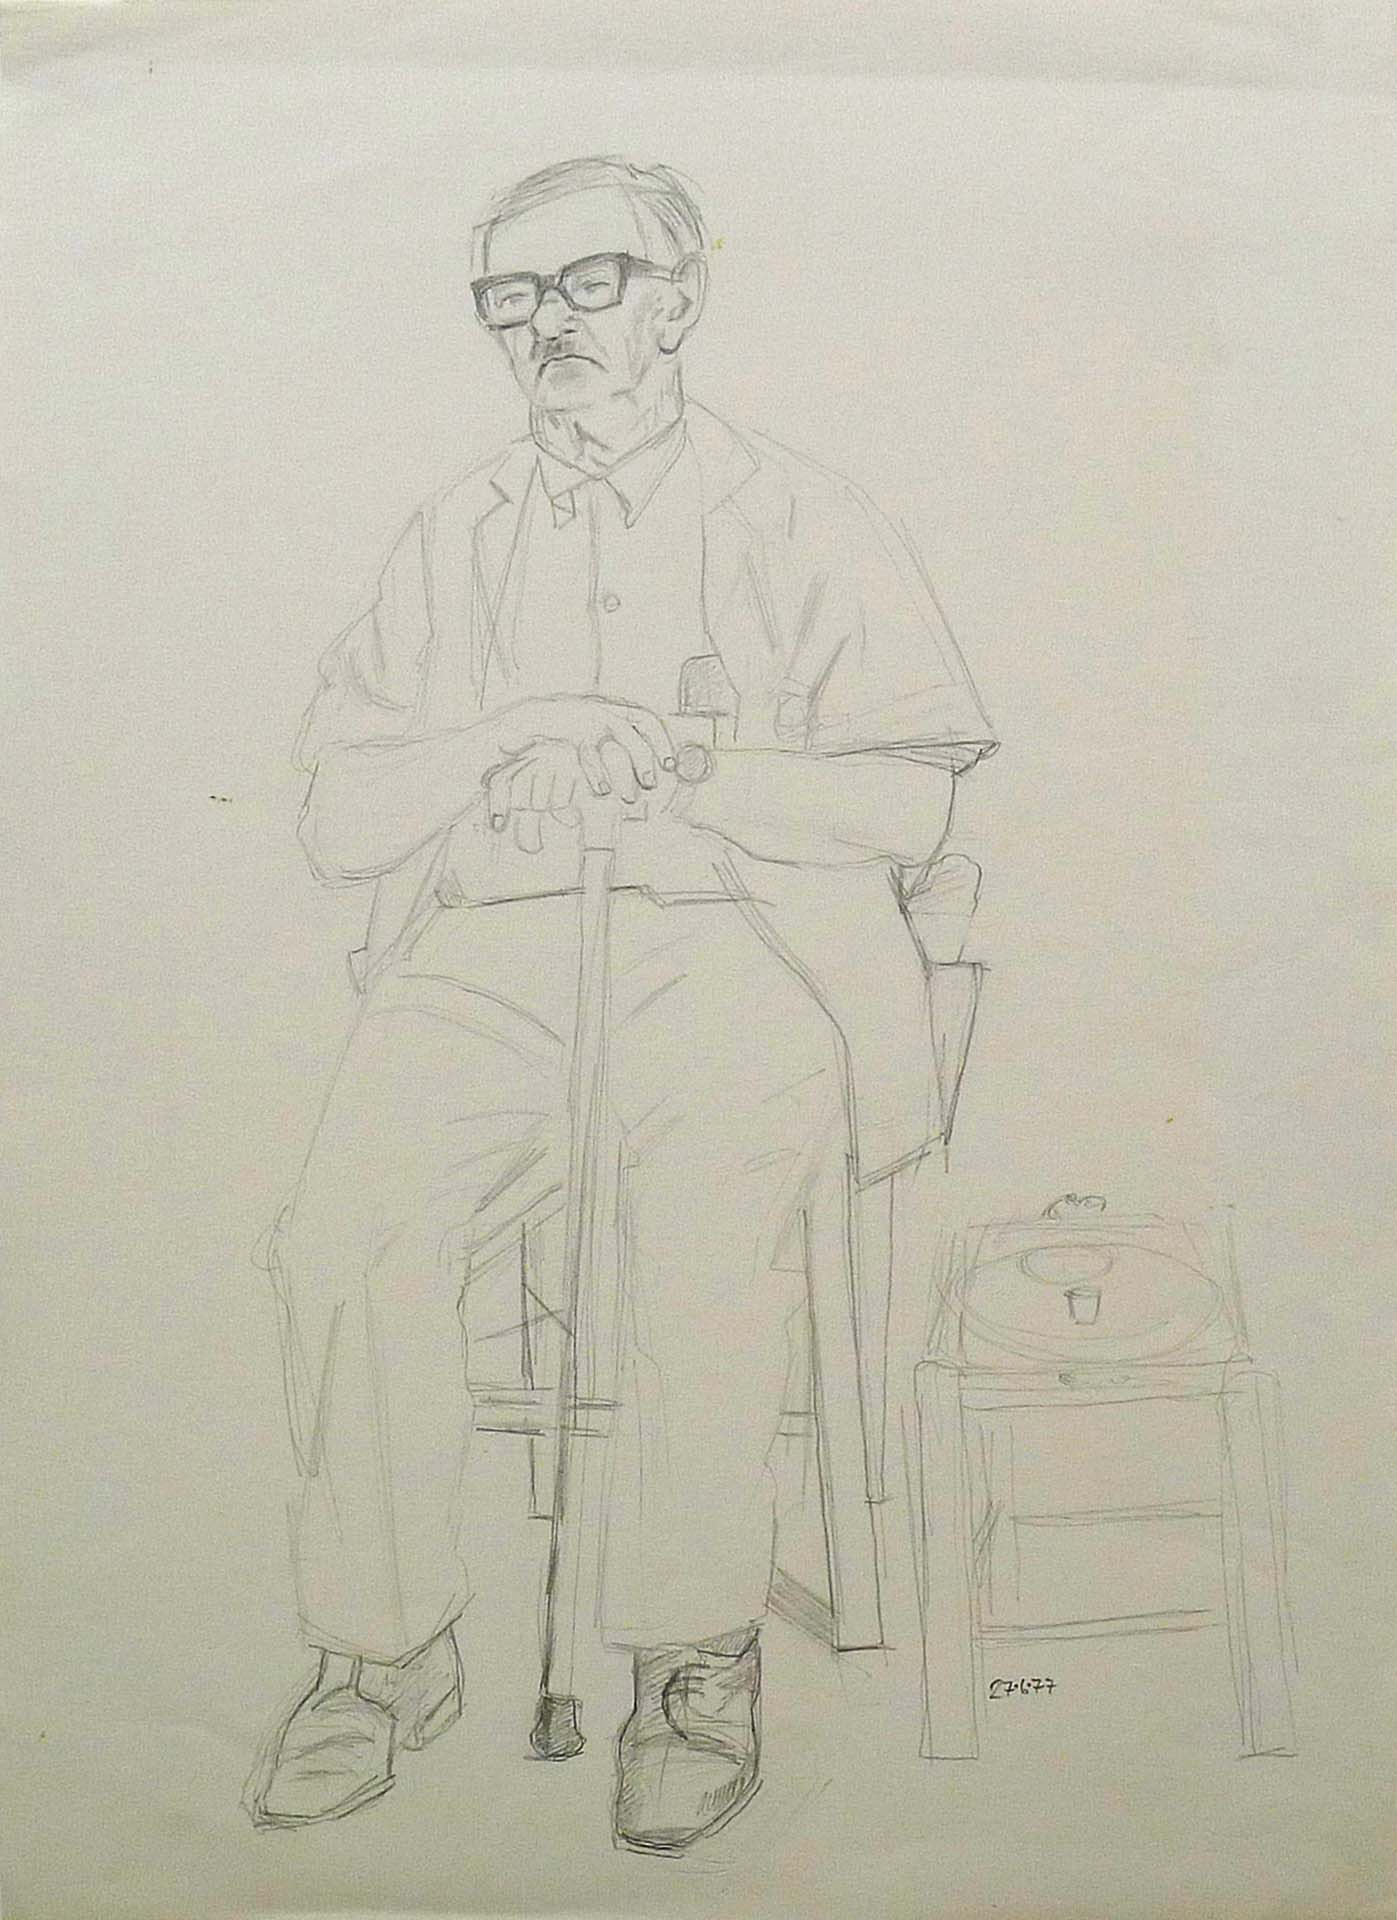 1977 pencil drawing of an andriot